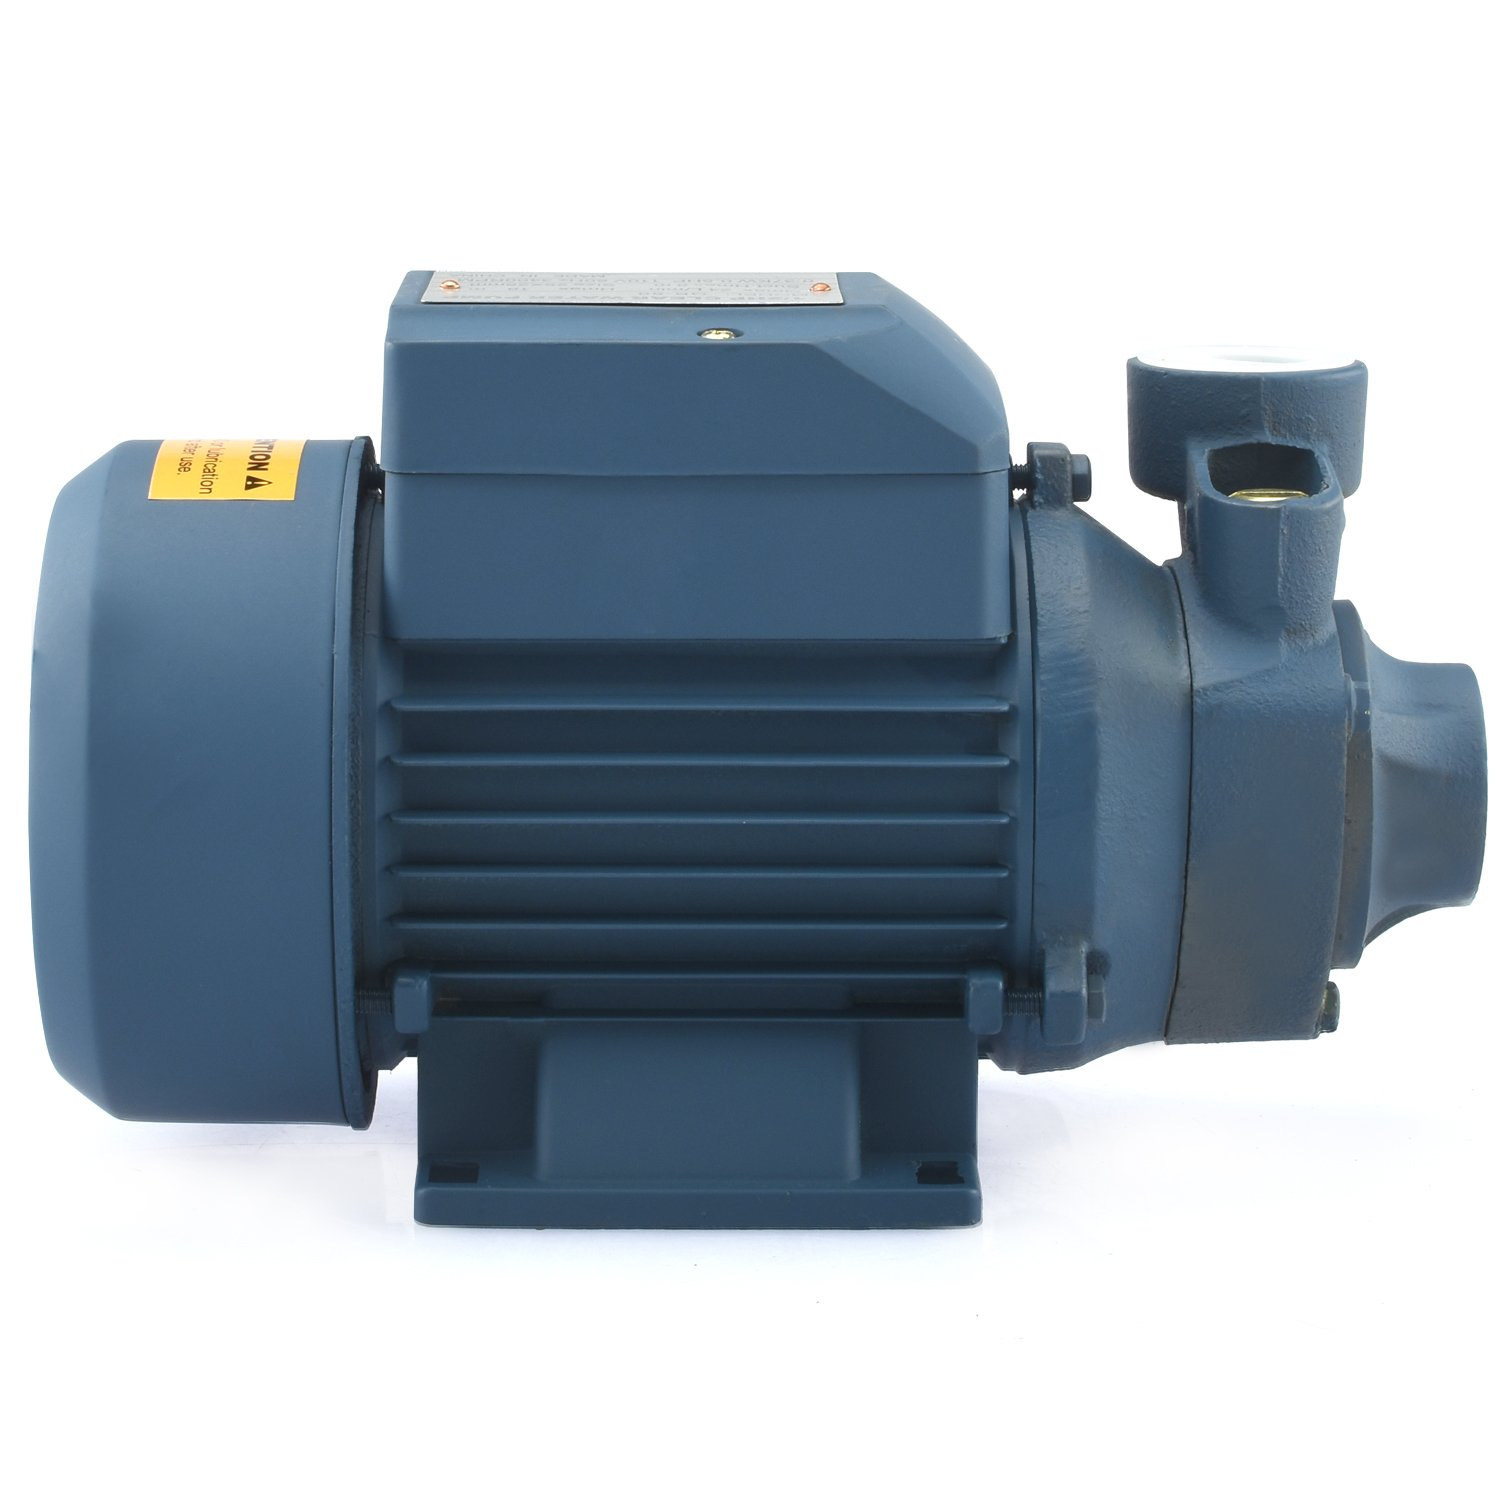 Tooluxe 50635 Electric Centrifugal Clear Water Pump, 0.5 HP | Pools, Ponds, Irrigation, Garden, Sprinkling | 380 GPH by Tooluxe (Image #4)